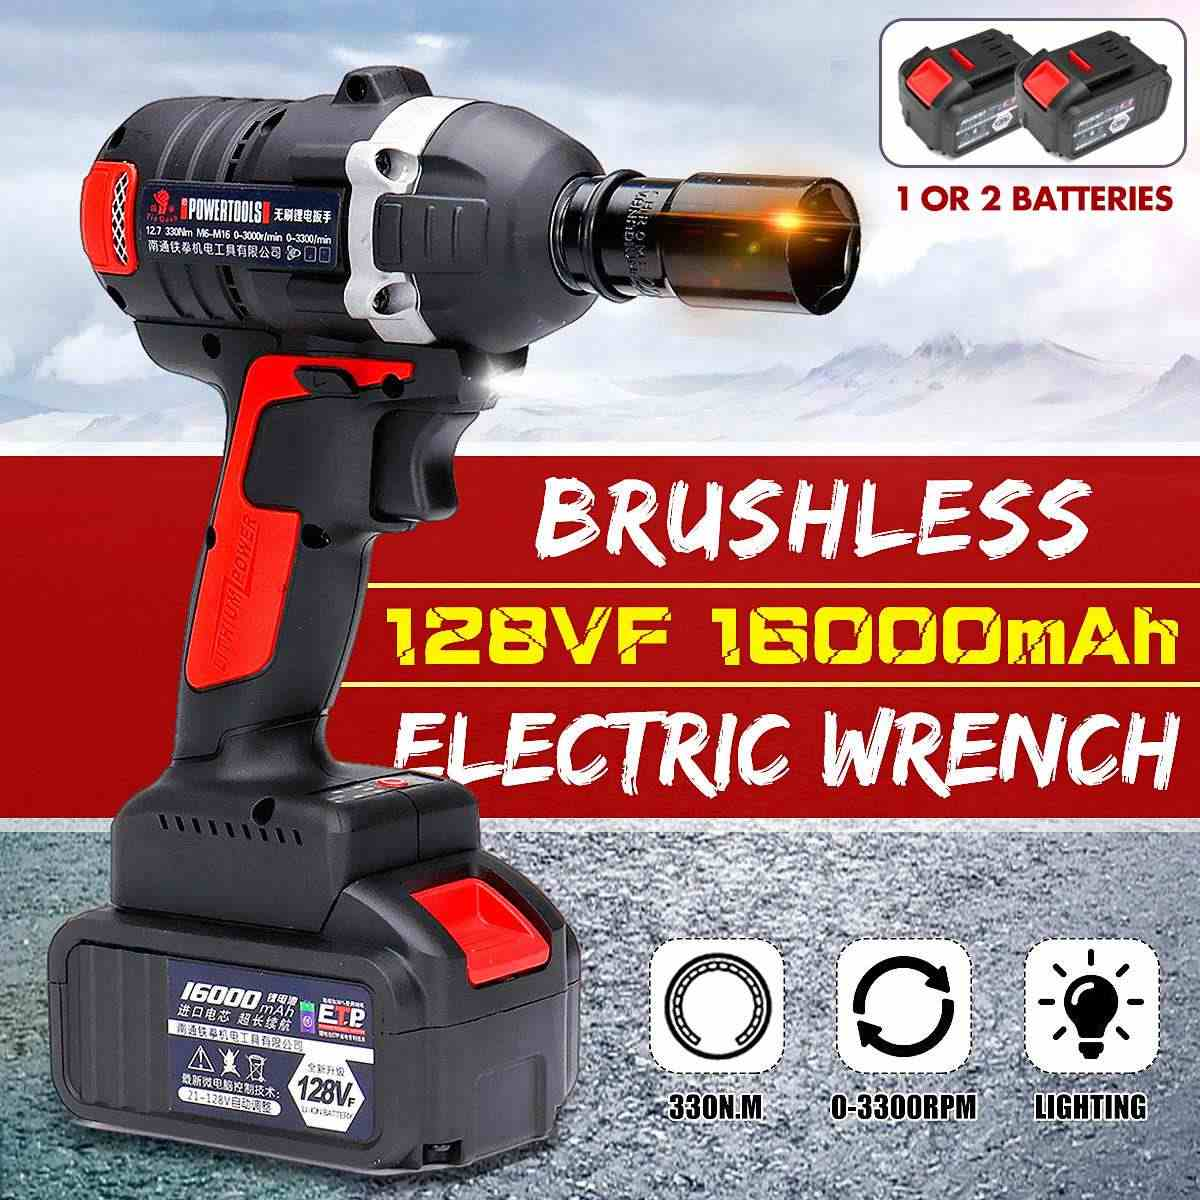 128V 16000mah Brushless Motor Cordless Electric Wrench 330N.m Torque Household Car Wheel Socket Wrench Hand Drill Power Tools